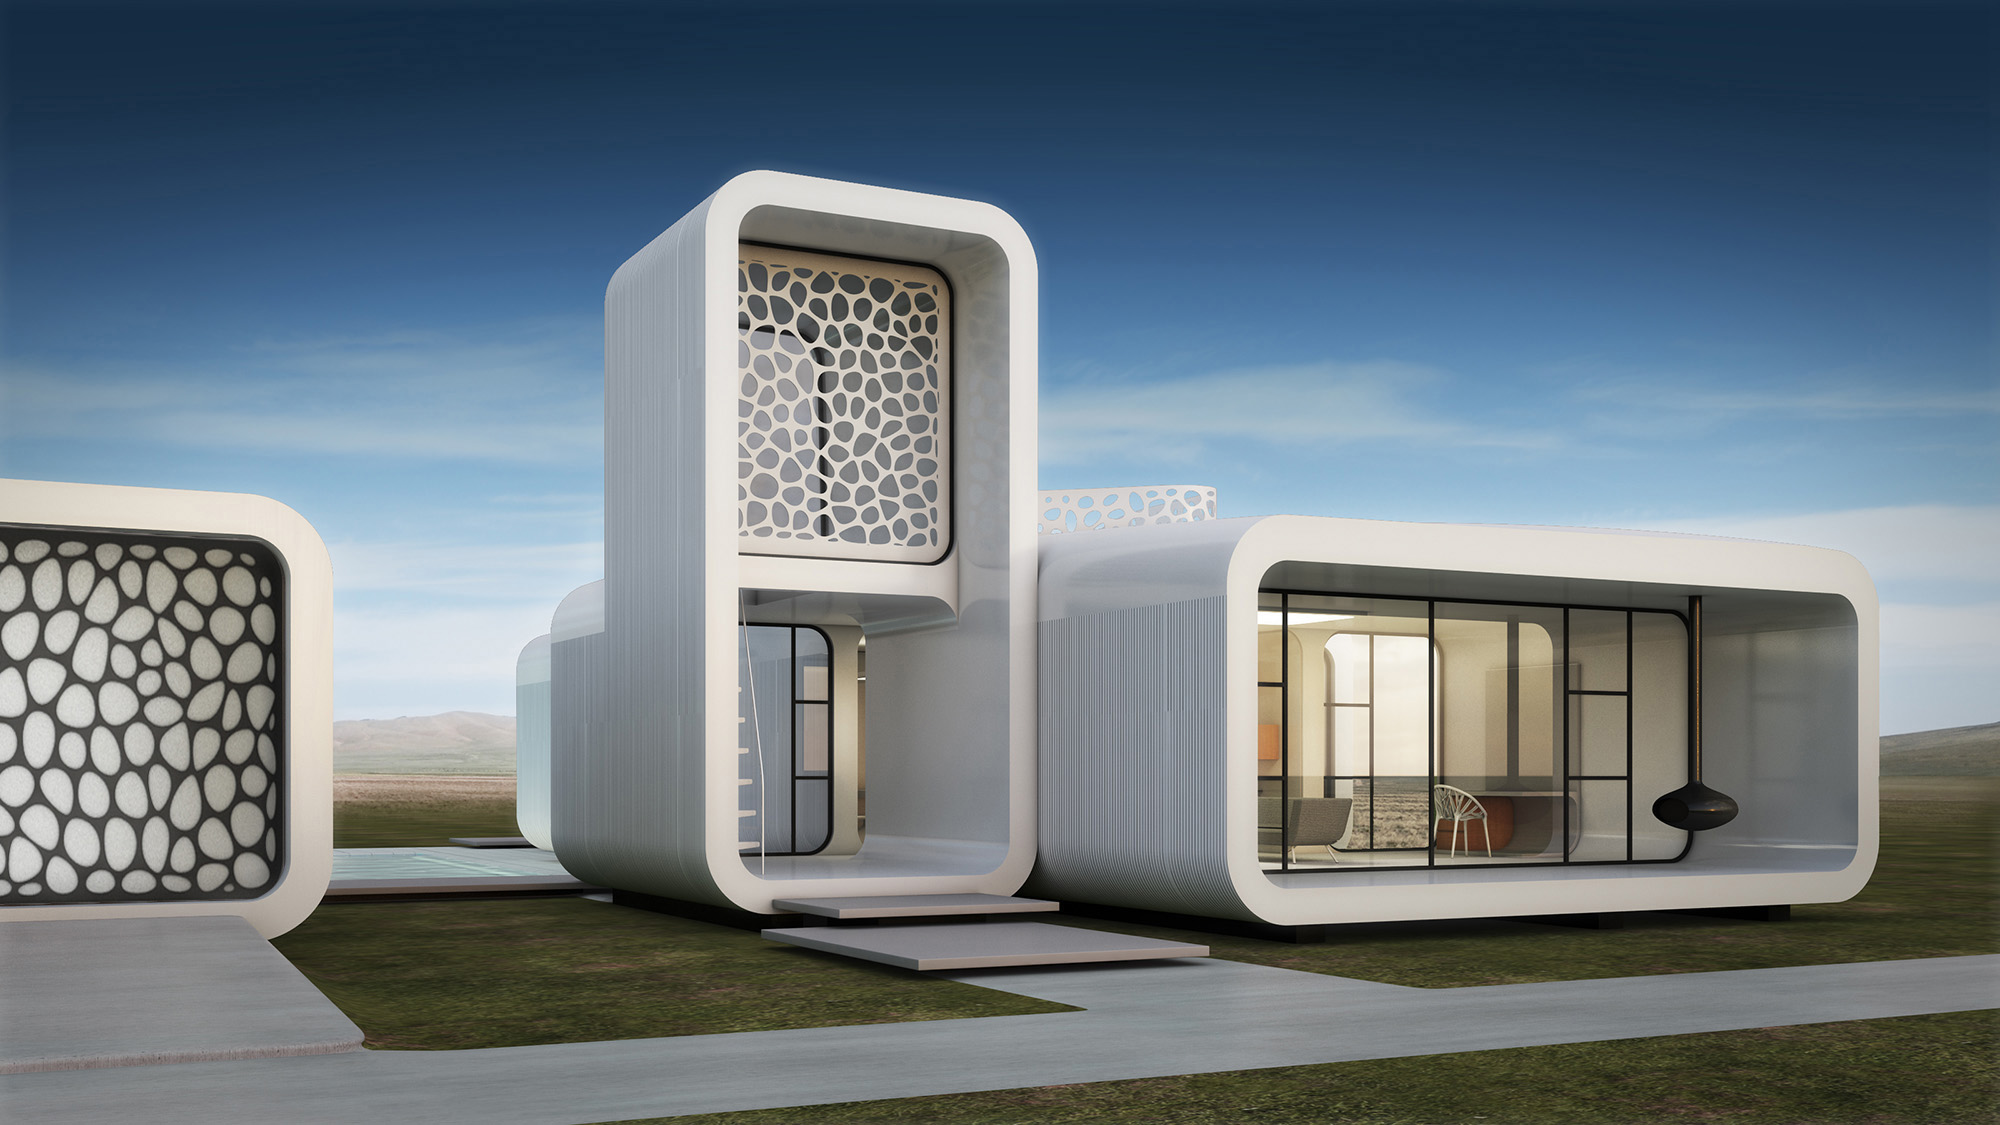 D Printer Exhibition Uk : Dubai to build world s first d printed office